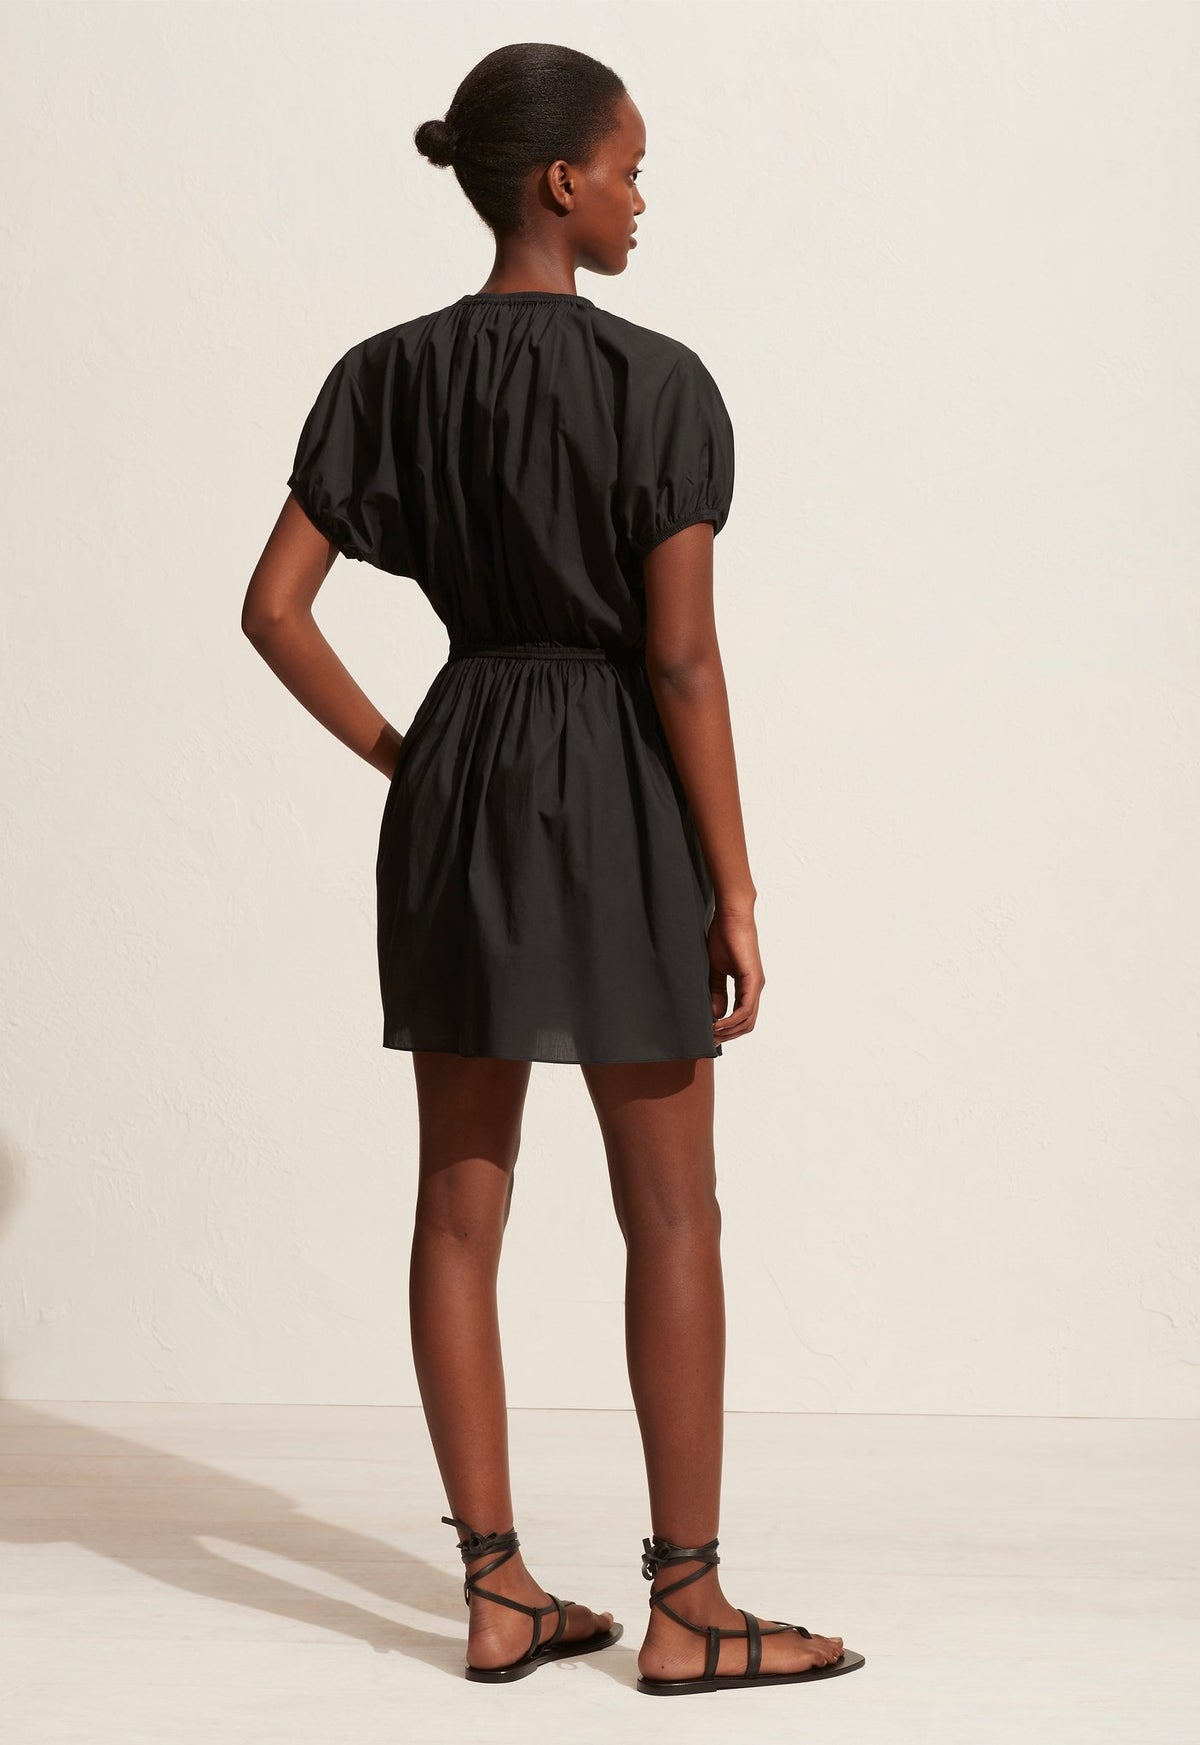 The Cocoon Mini Dress